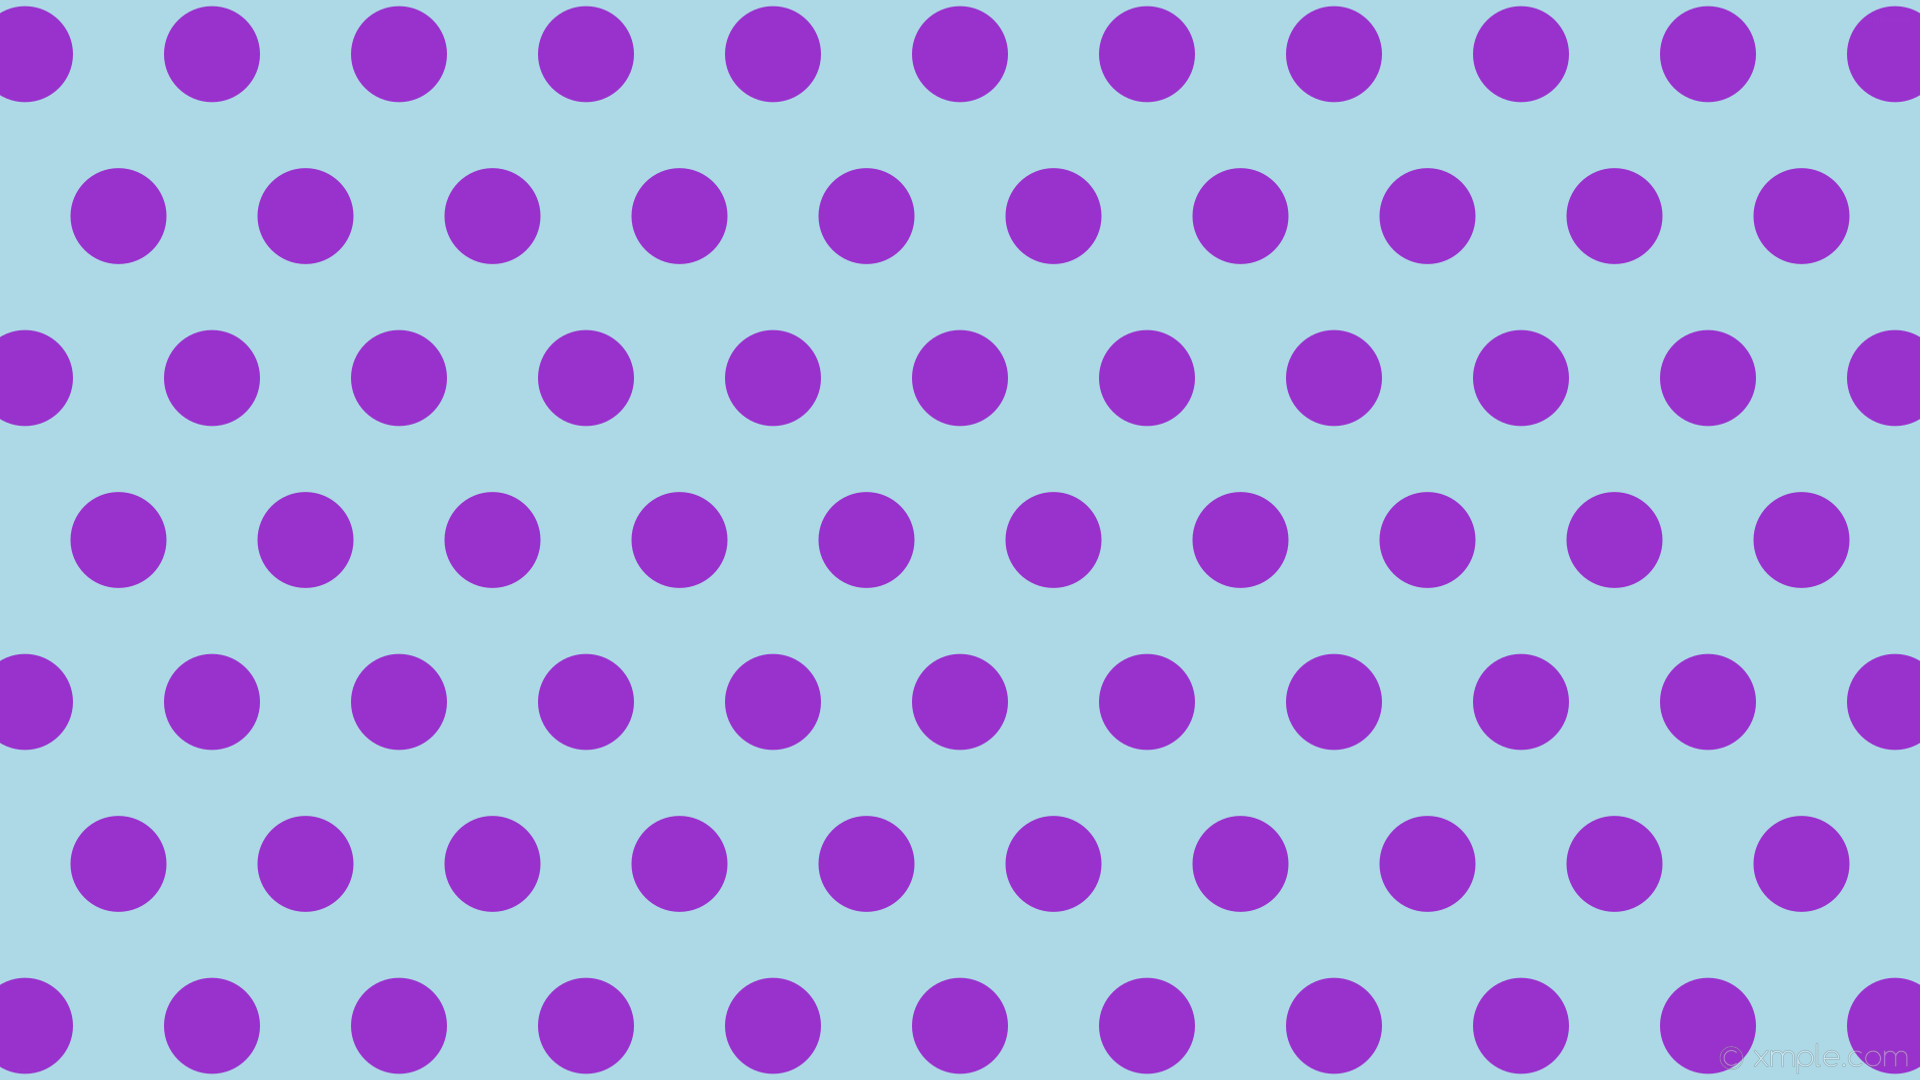 wallpaper dots purple blue polka hexagon light blue dark orchid #add8e6  #9932cc 0°